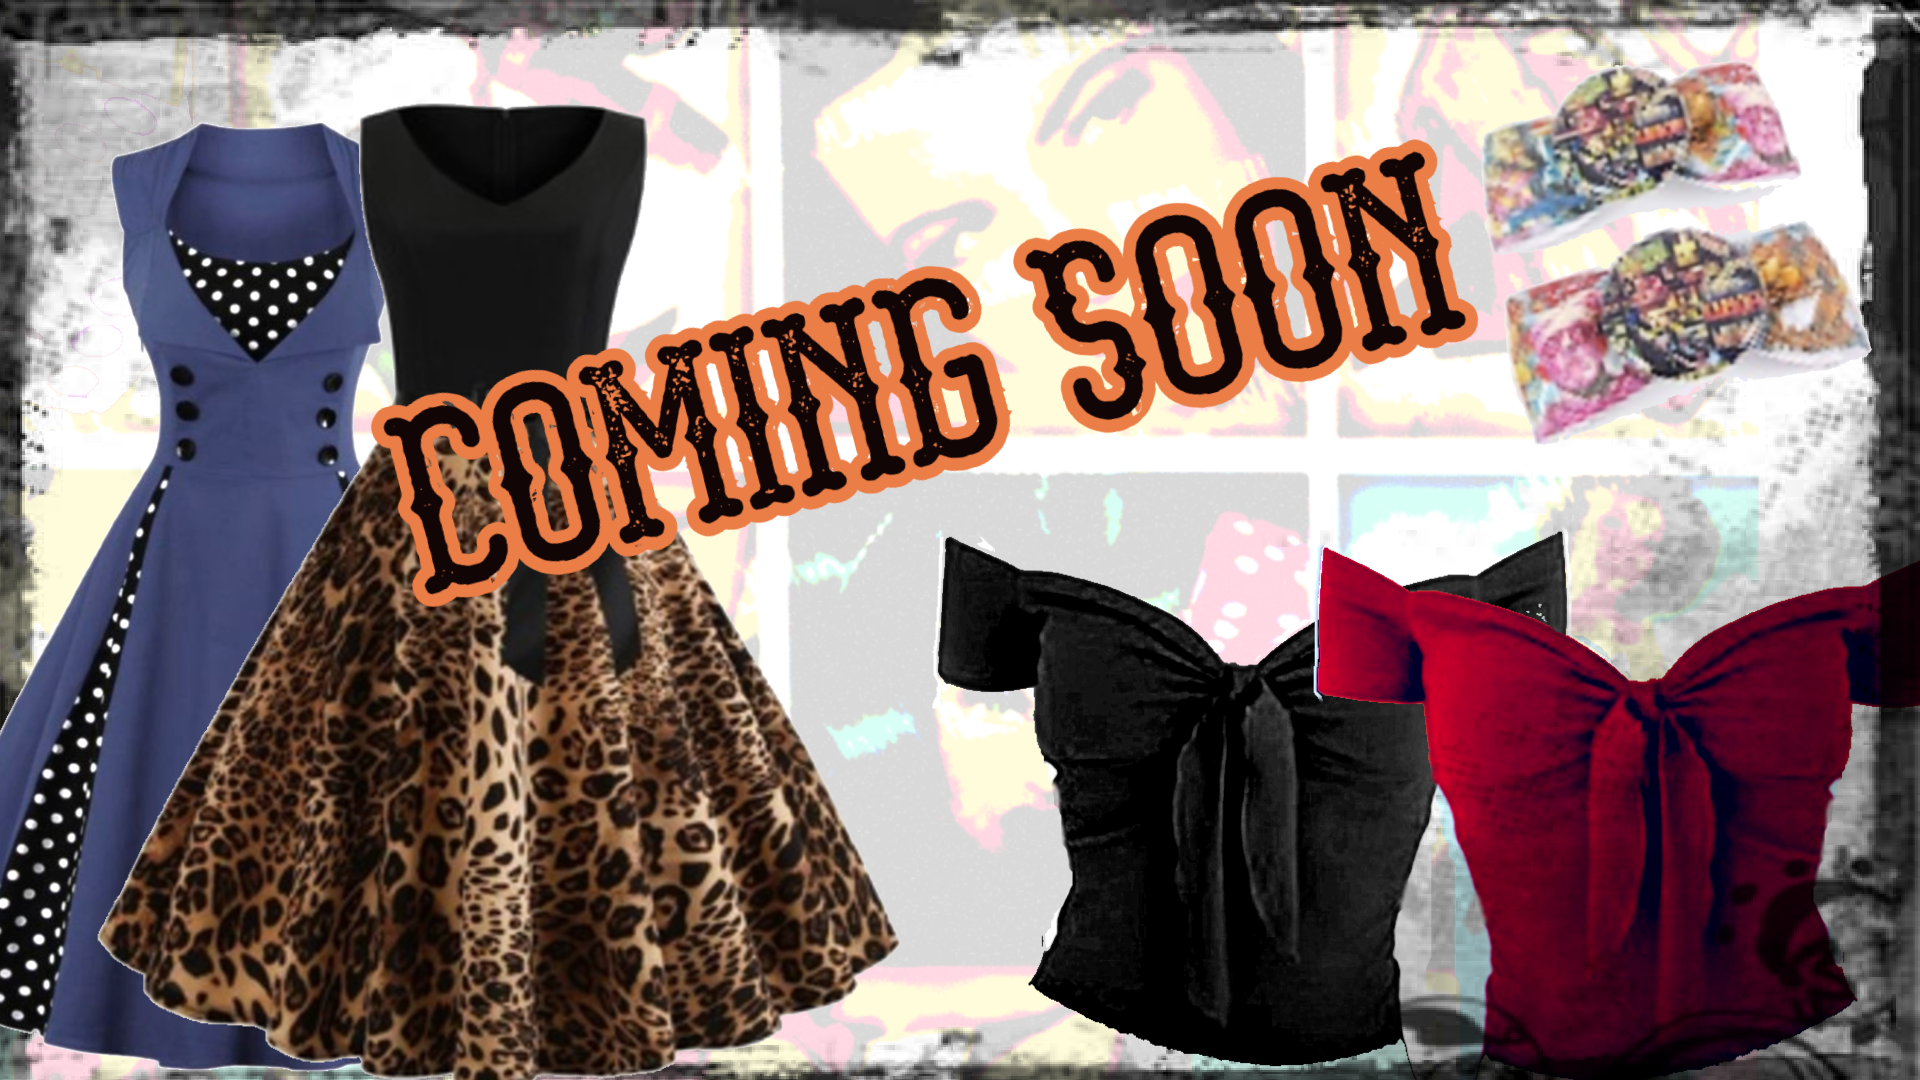 Rockabilly clothing coming soon